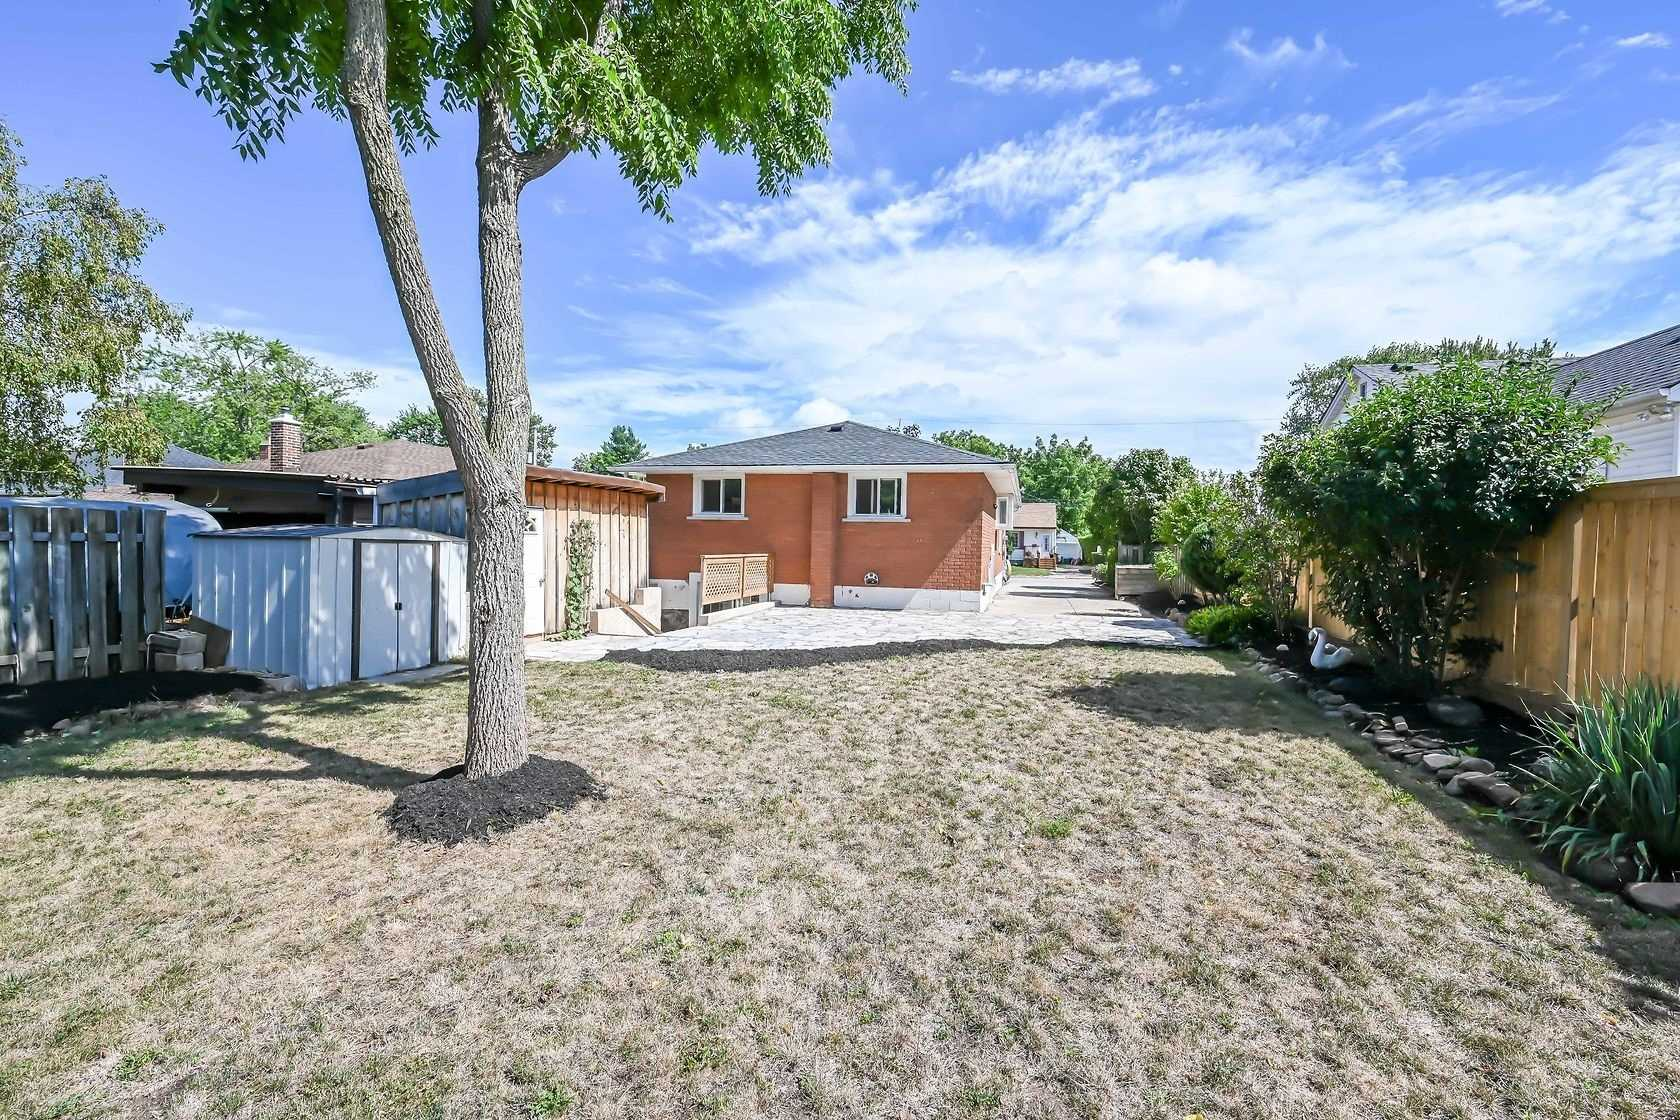 Detached house For Sale In Grimsby - 77 Fairview Rd, Grimsby, Ontario, Canada L3M3L6 , 3 Bedrooms Bedrooms, ,2 BathroomsBathrooms,Detached,For Sale,Fairview